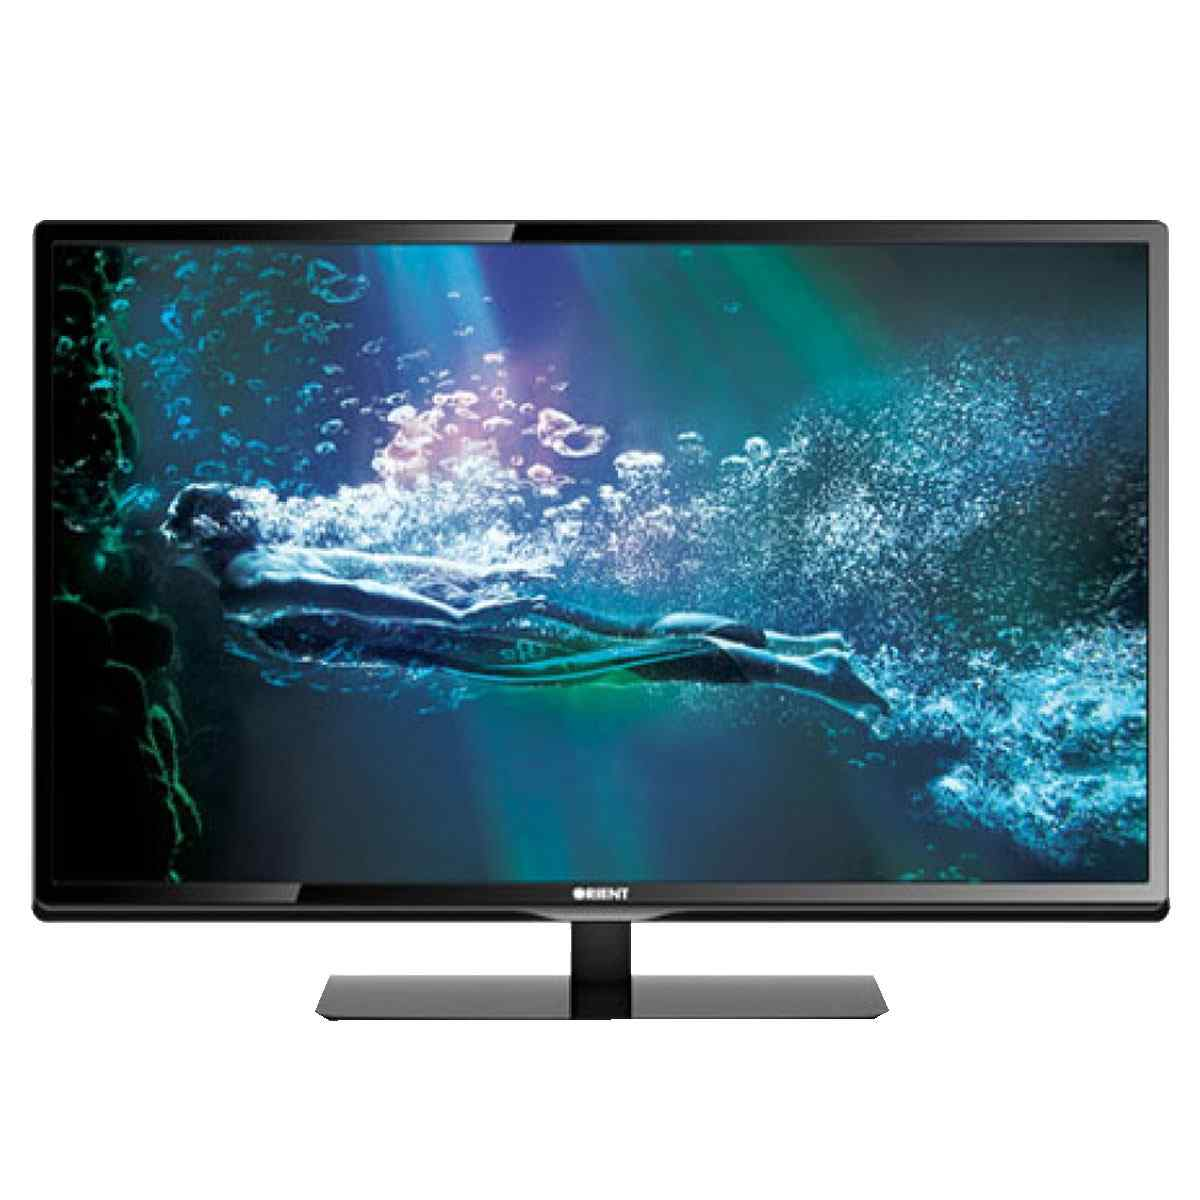 ORIENT 40 Inch FHD Smart LED TV (40G7061)